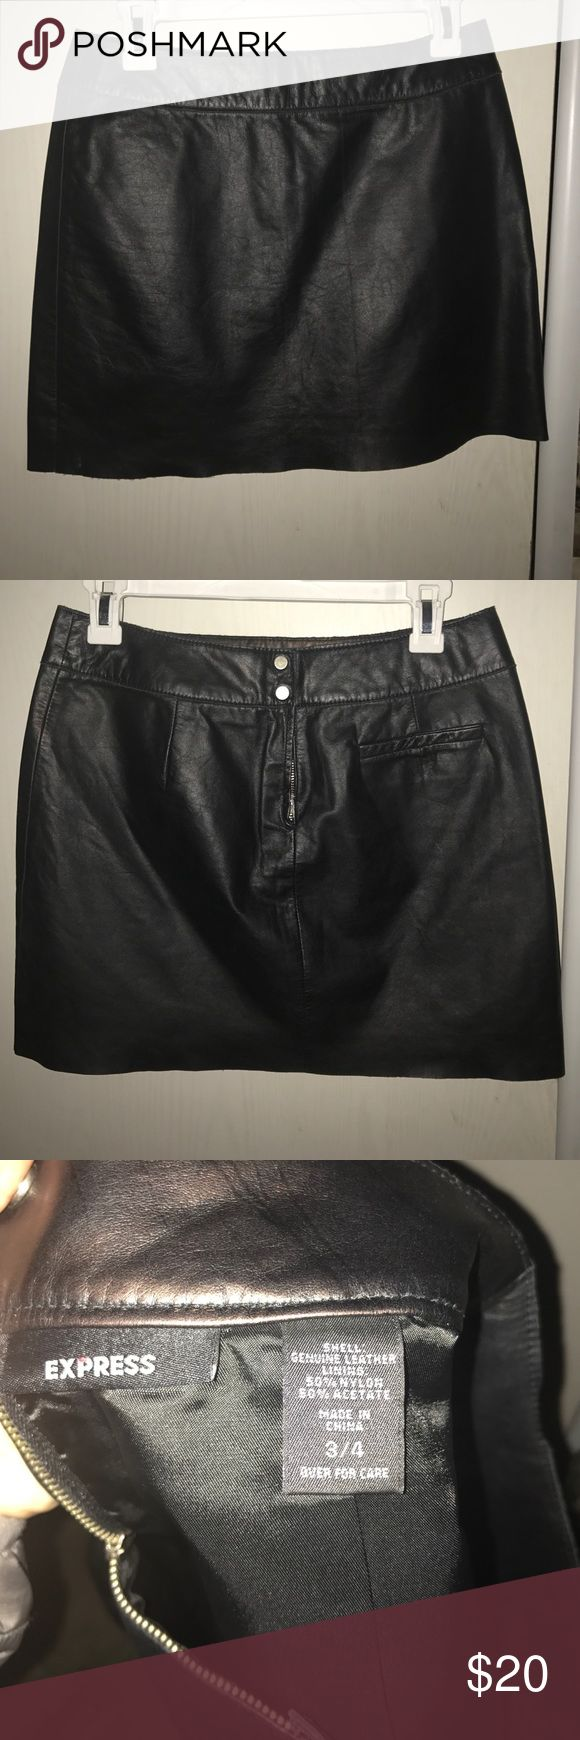 Black Leather Mini Skirt Black leather mini from Express.  Unfinished edges and lined, this skirt zips and buttons in the back.  Size 3/4 Express Skirts Mini